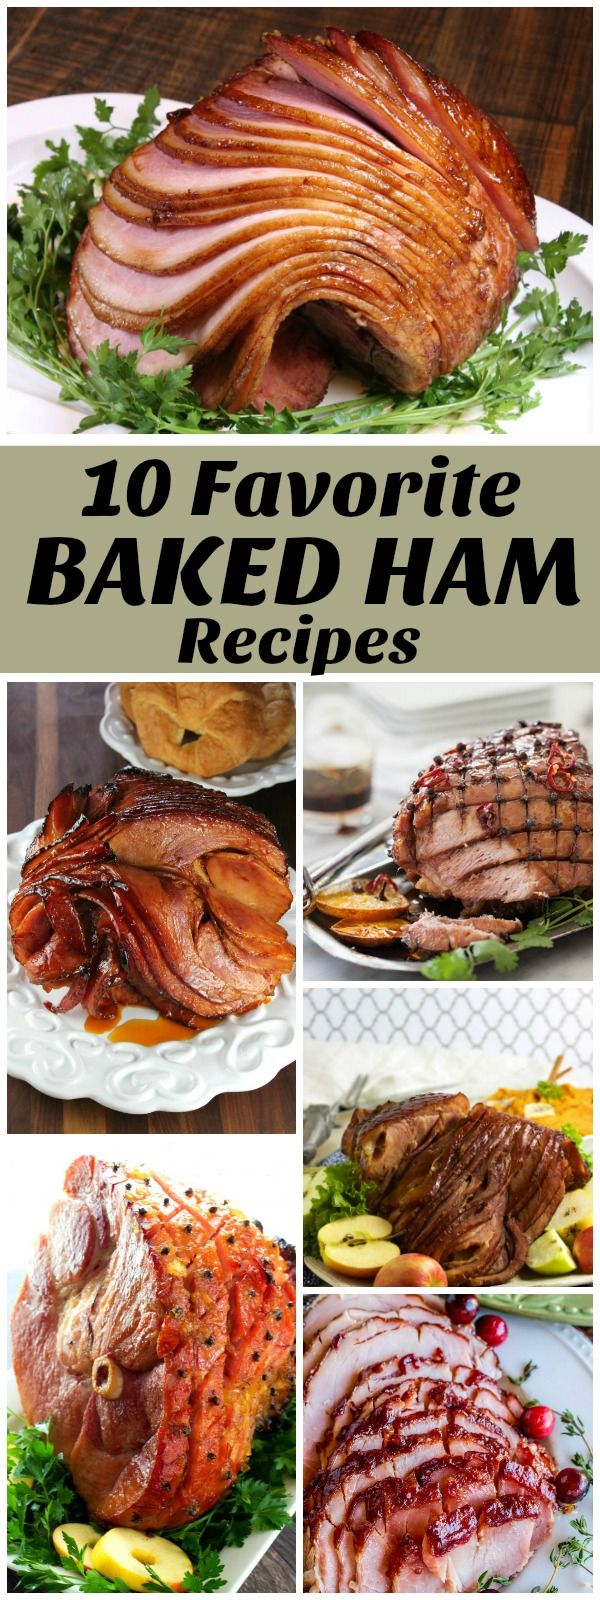 10 Favorite Baked Ham Recipes: including classic Brown Sugar Glazed Ham, Bourbon Orange Glazed Ham, Cranberry Dijon Glazed Ham and more!